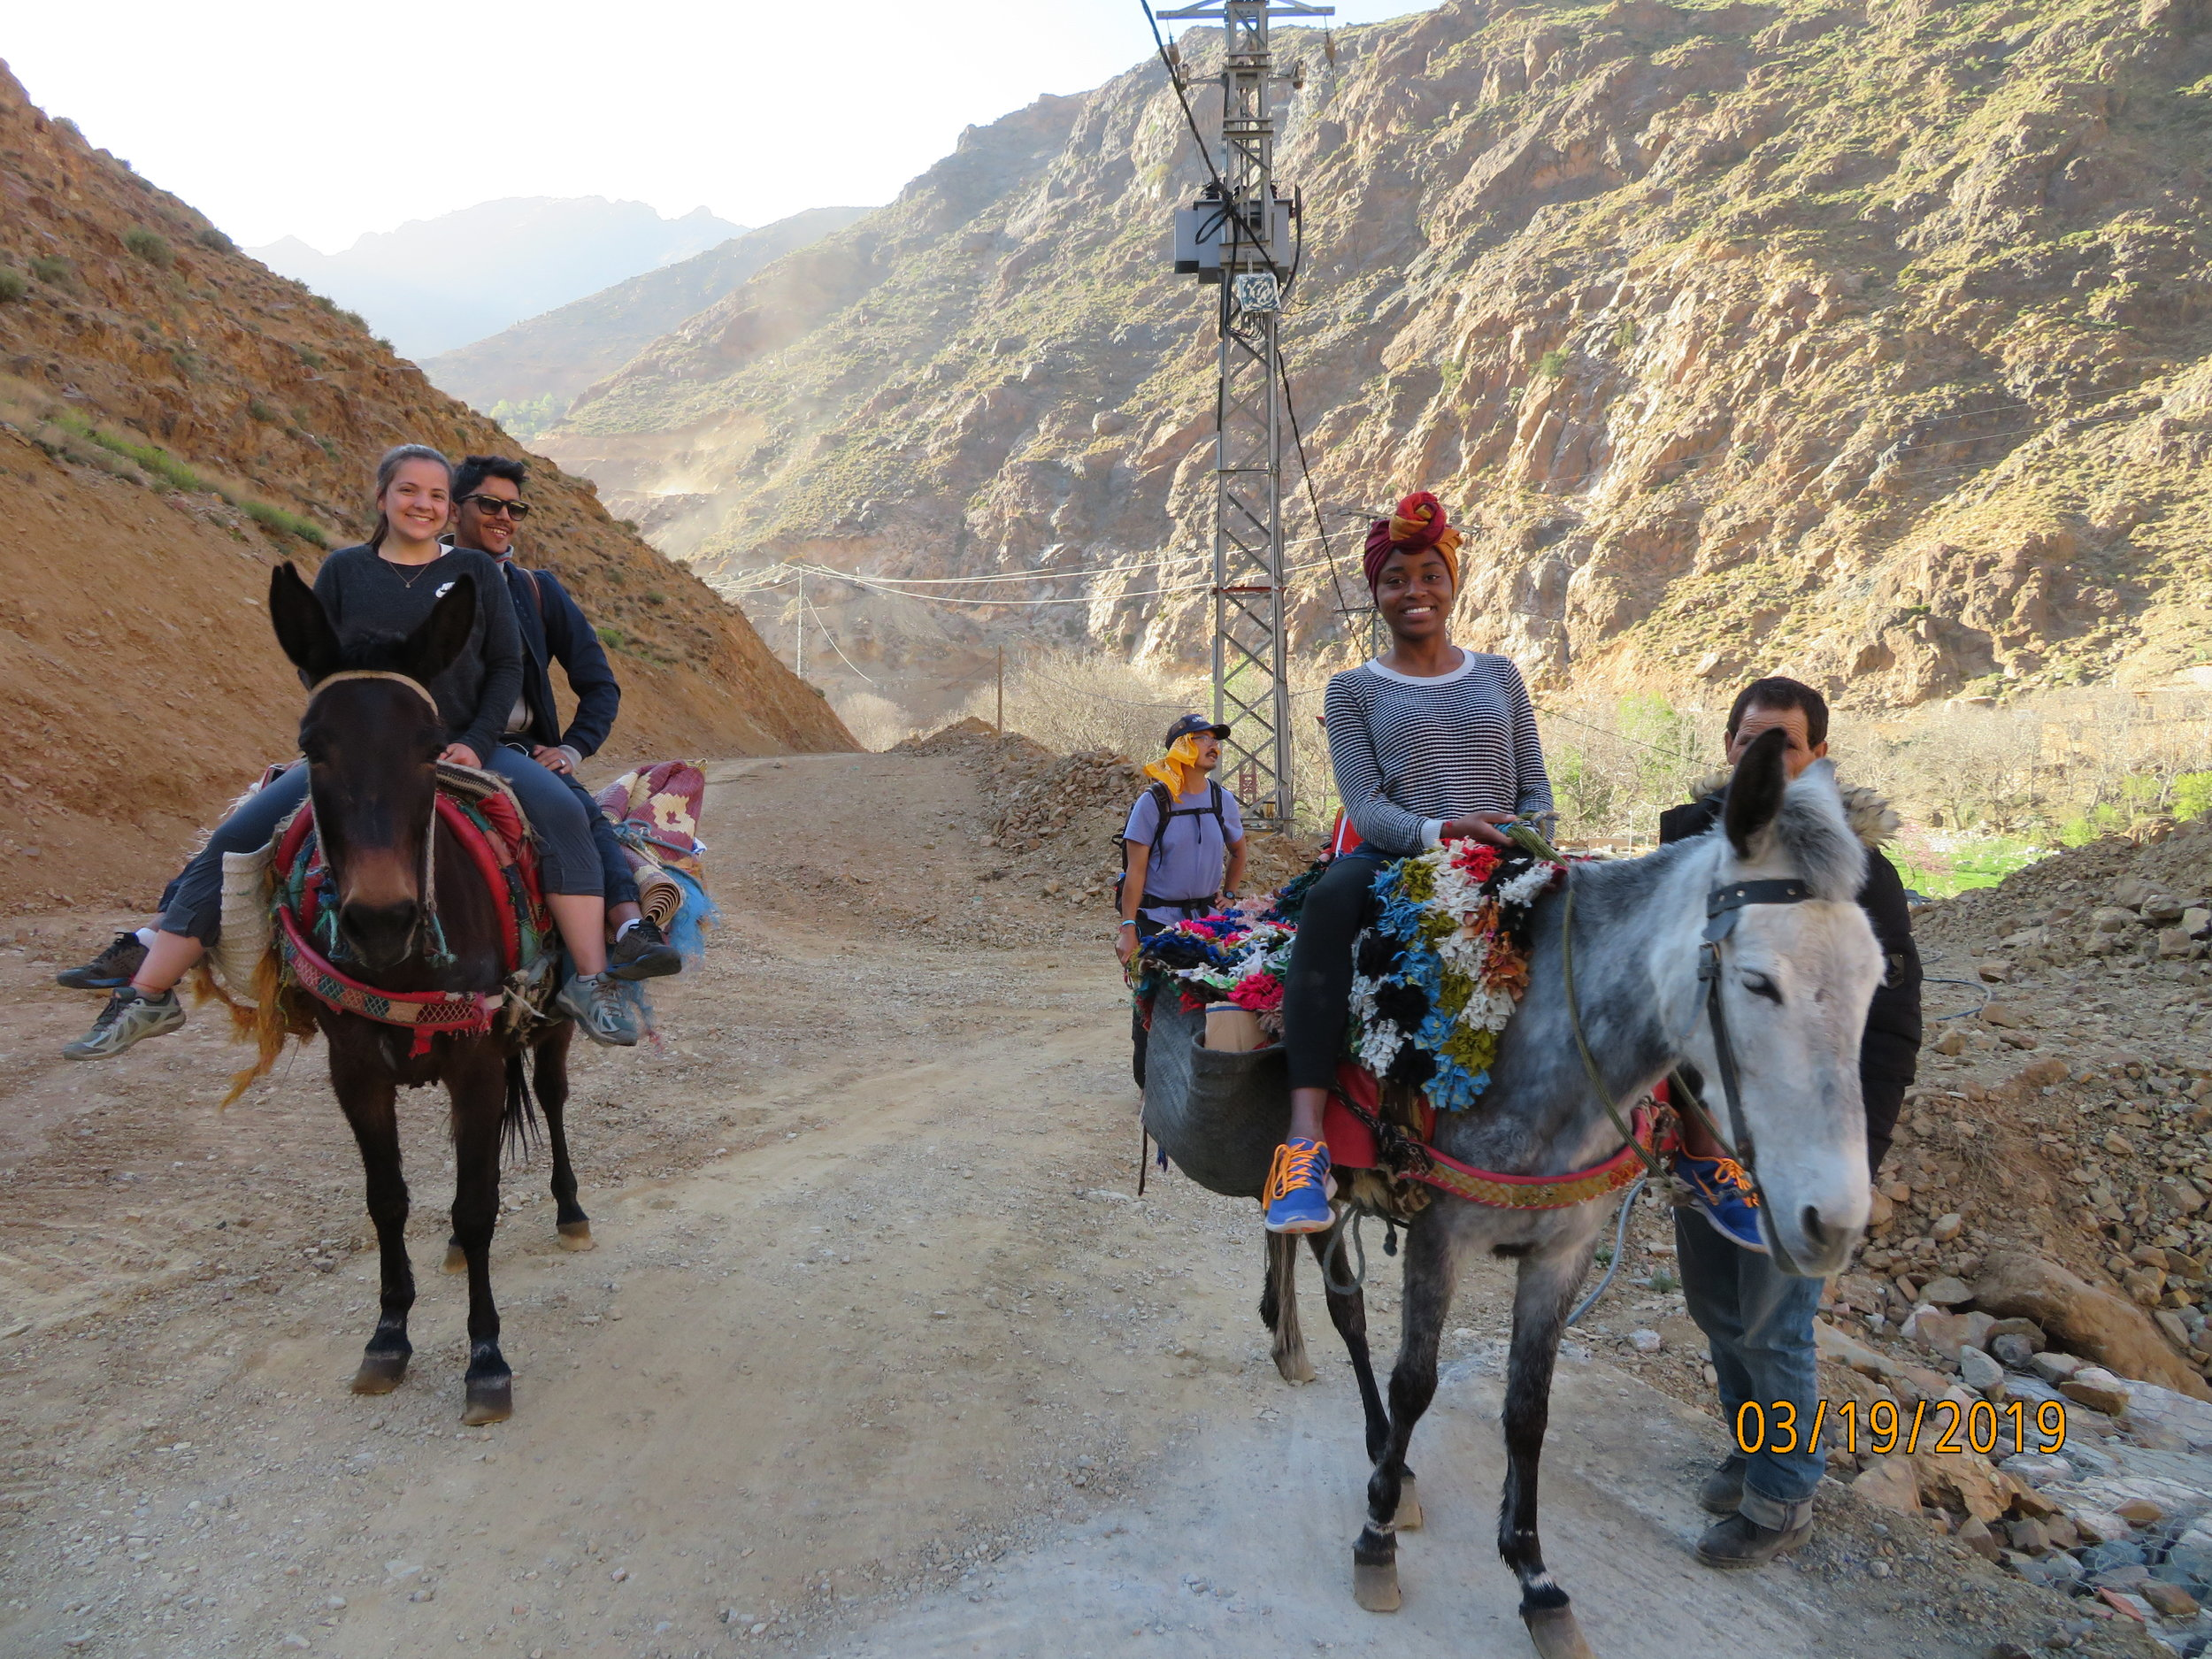 Mules are the preferred mode of transportation for Salaam.